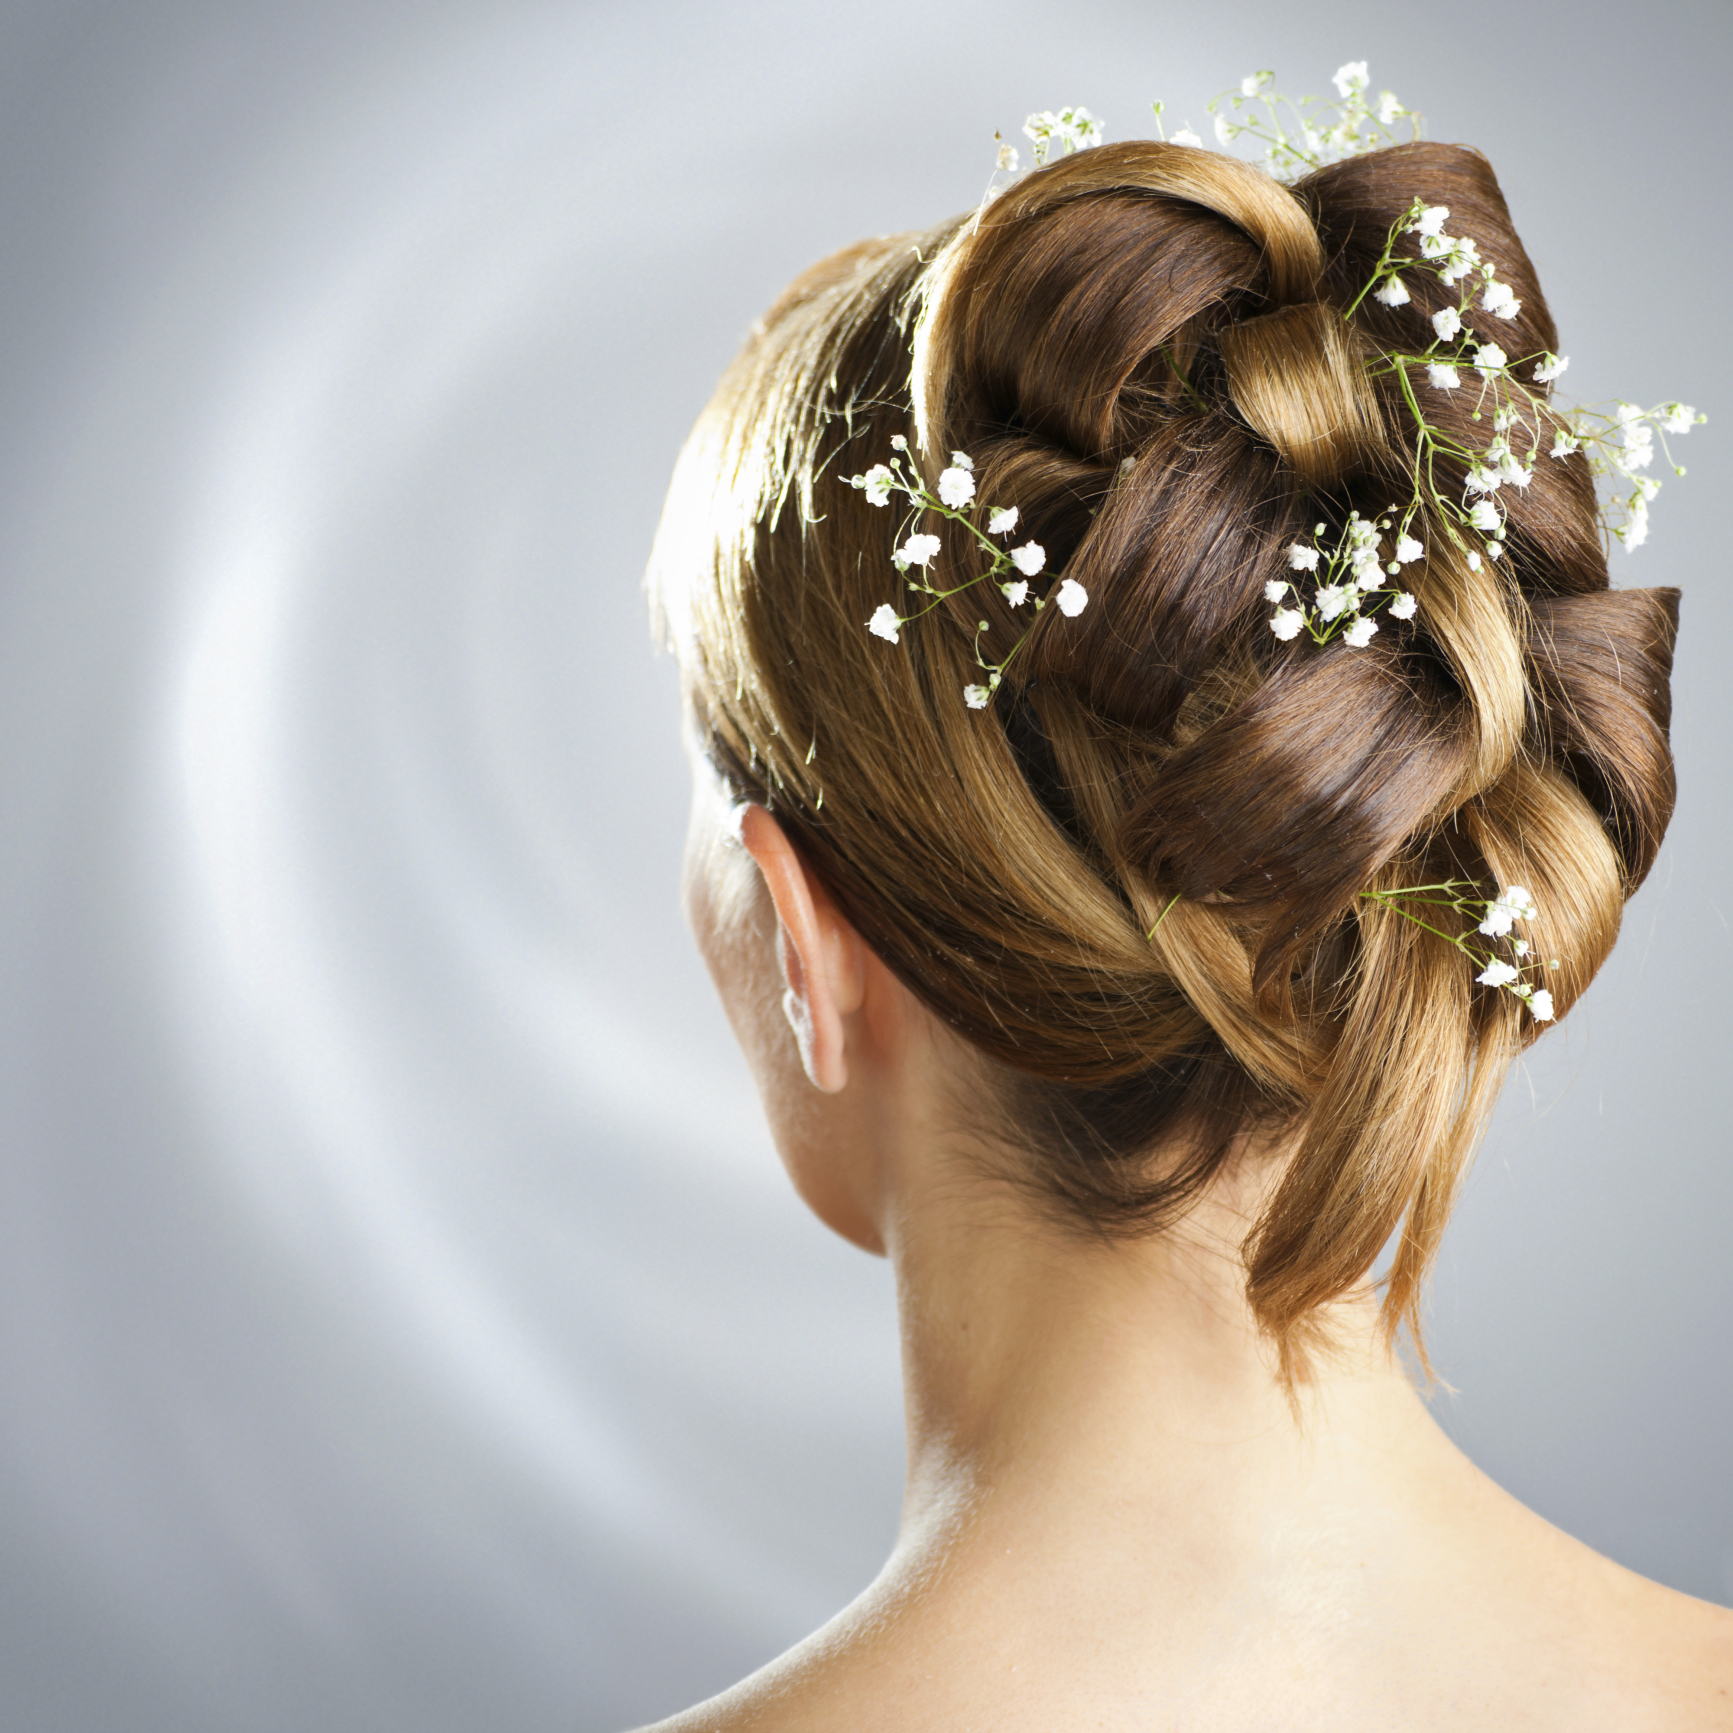 Modern Wedding Hairstyles For The Cool Contemporary Bride: Modern Bridal Hair Styles